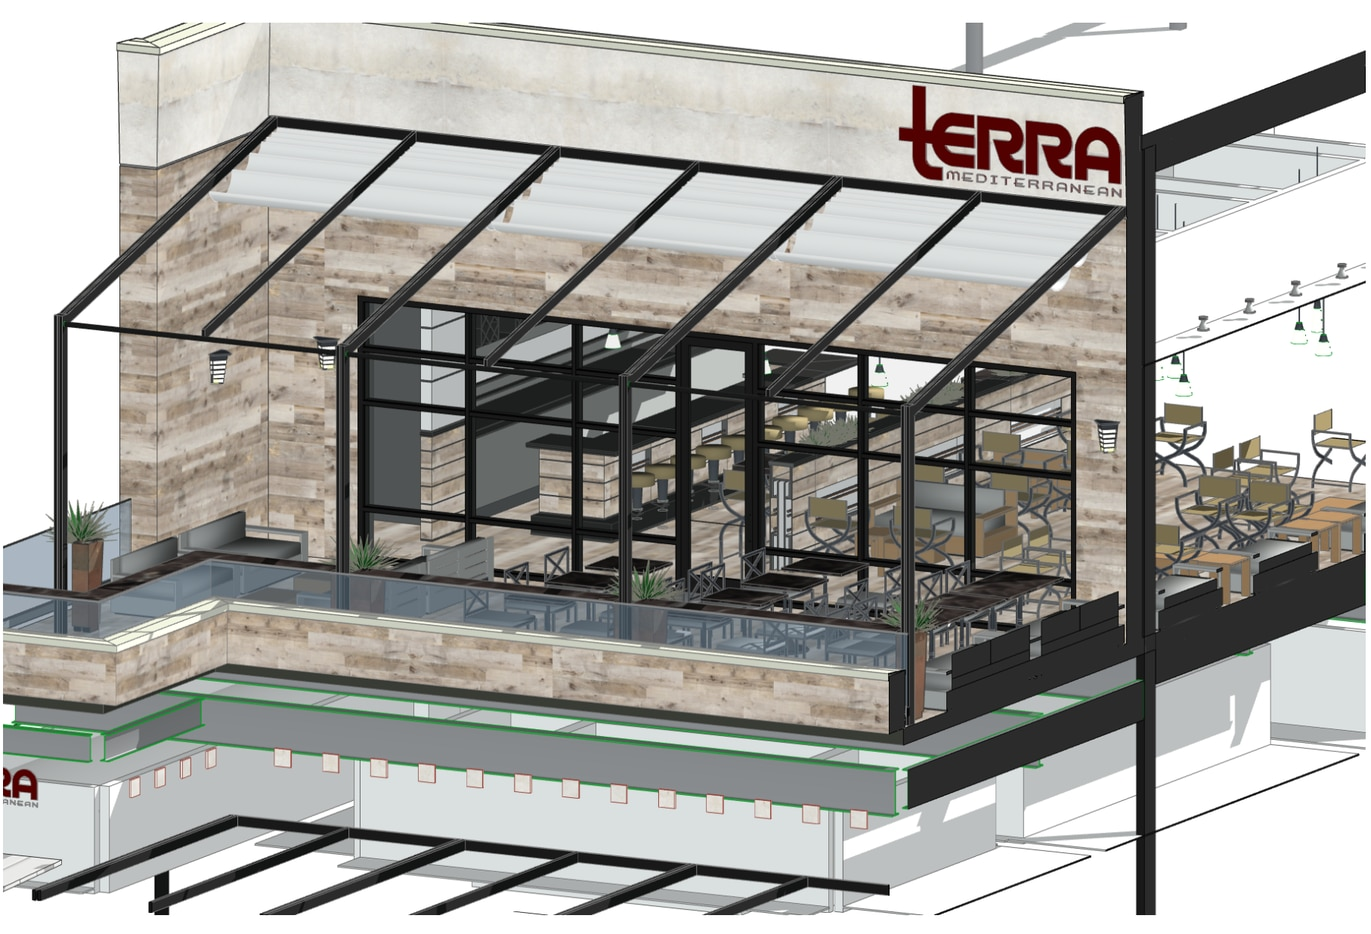 Here is the expected finished look at Terra Mediterranean Grill at The Shops at Willow Bend in Plano.